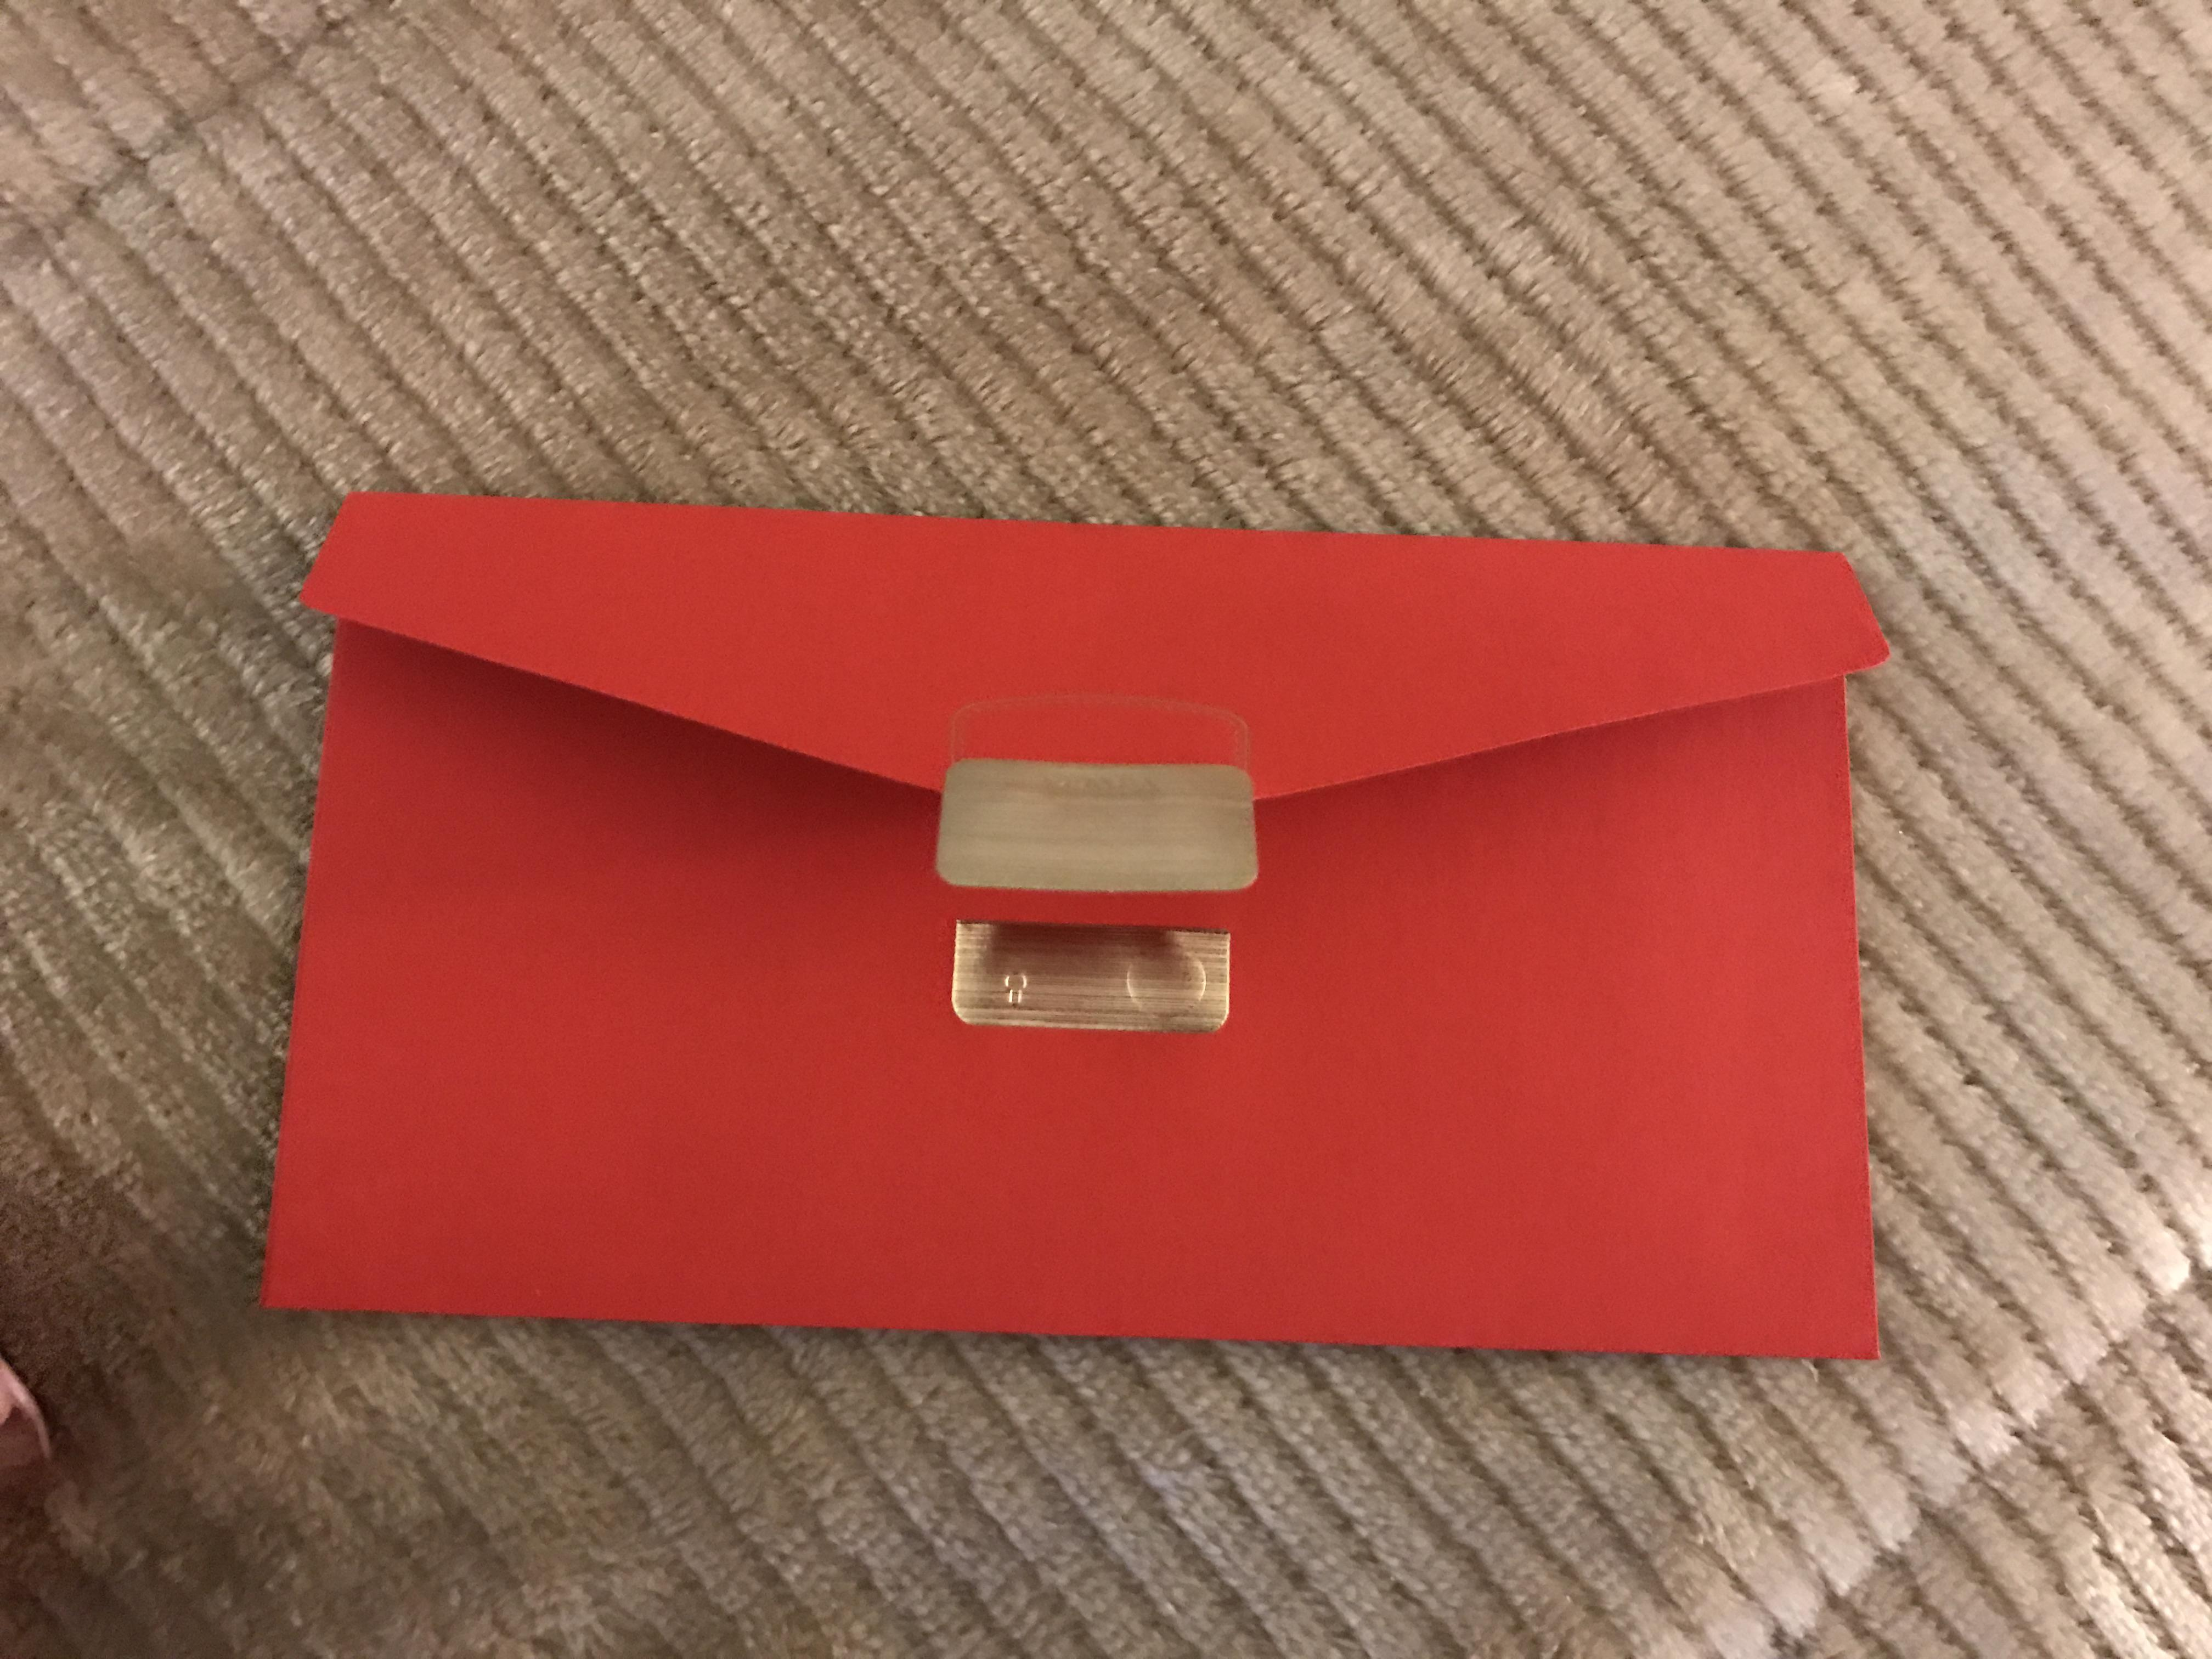 Prada New Envelope Red And Gold Paper Card Stock Clutch Tradesy